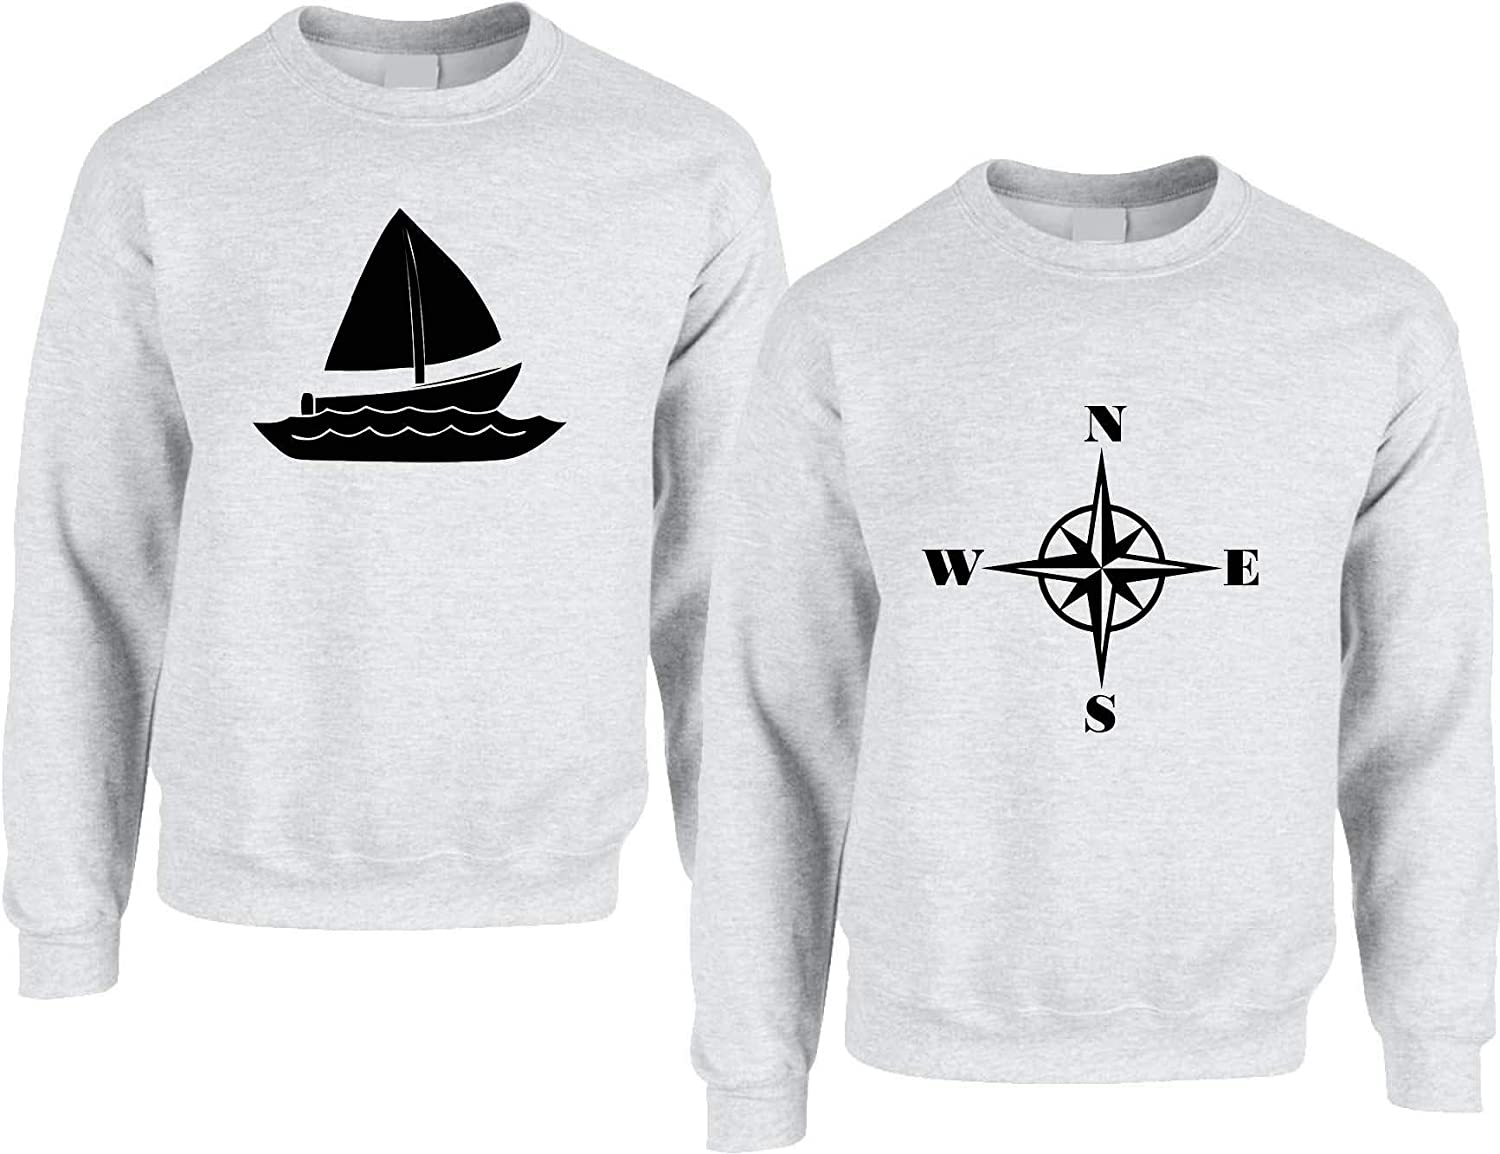 Womens S Mens M, Red Allntrends Couple Sweatshirt Sailing Boat and Compass Matching Valentines Tops